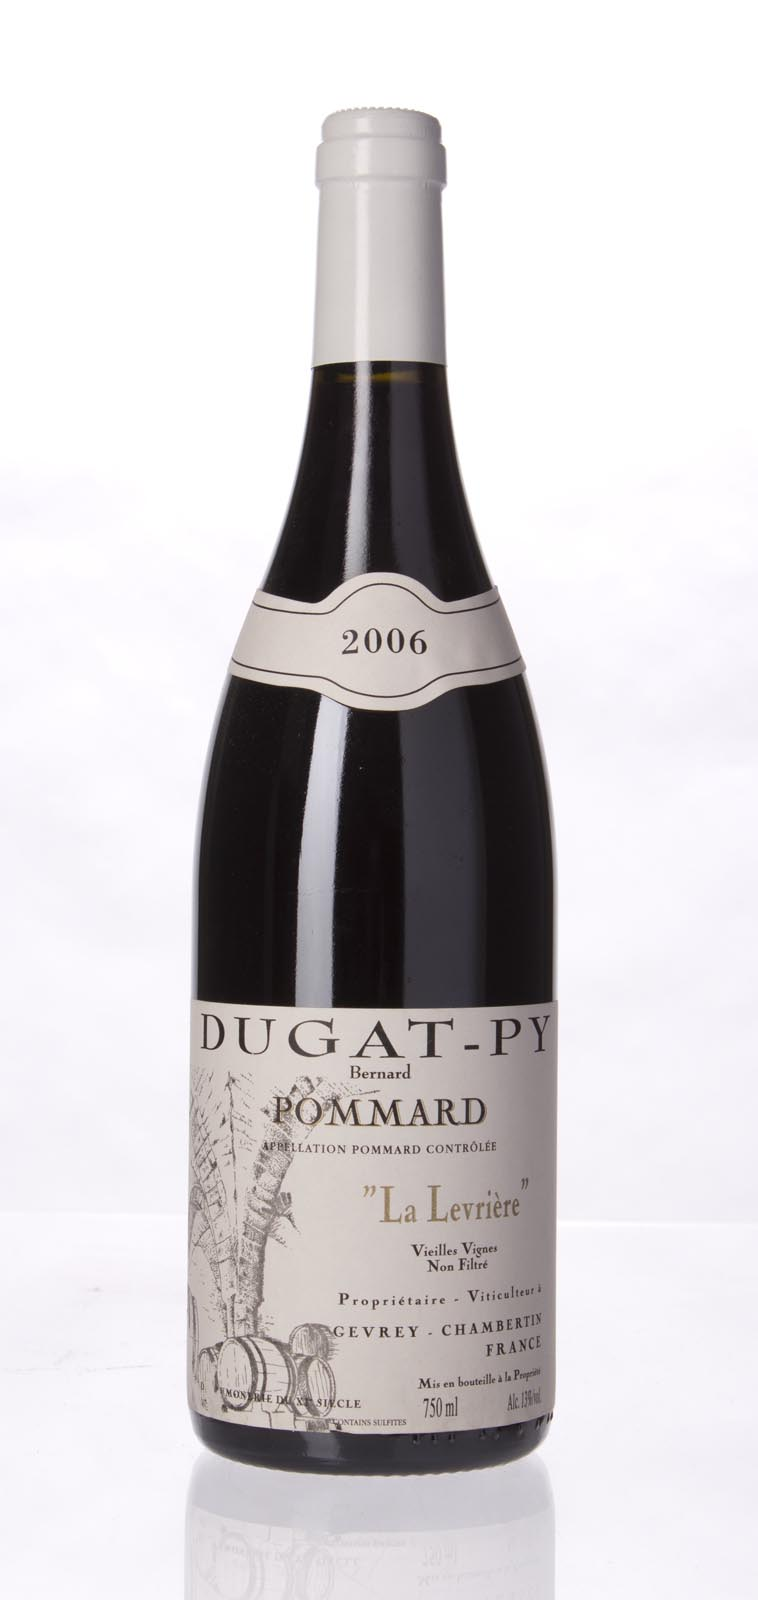 Domaine Dugat Py Pommard la Levriere Vieilles Vignes 2006, 750mL () from The BPW - Merchants of rare and fine wines.